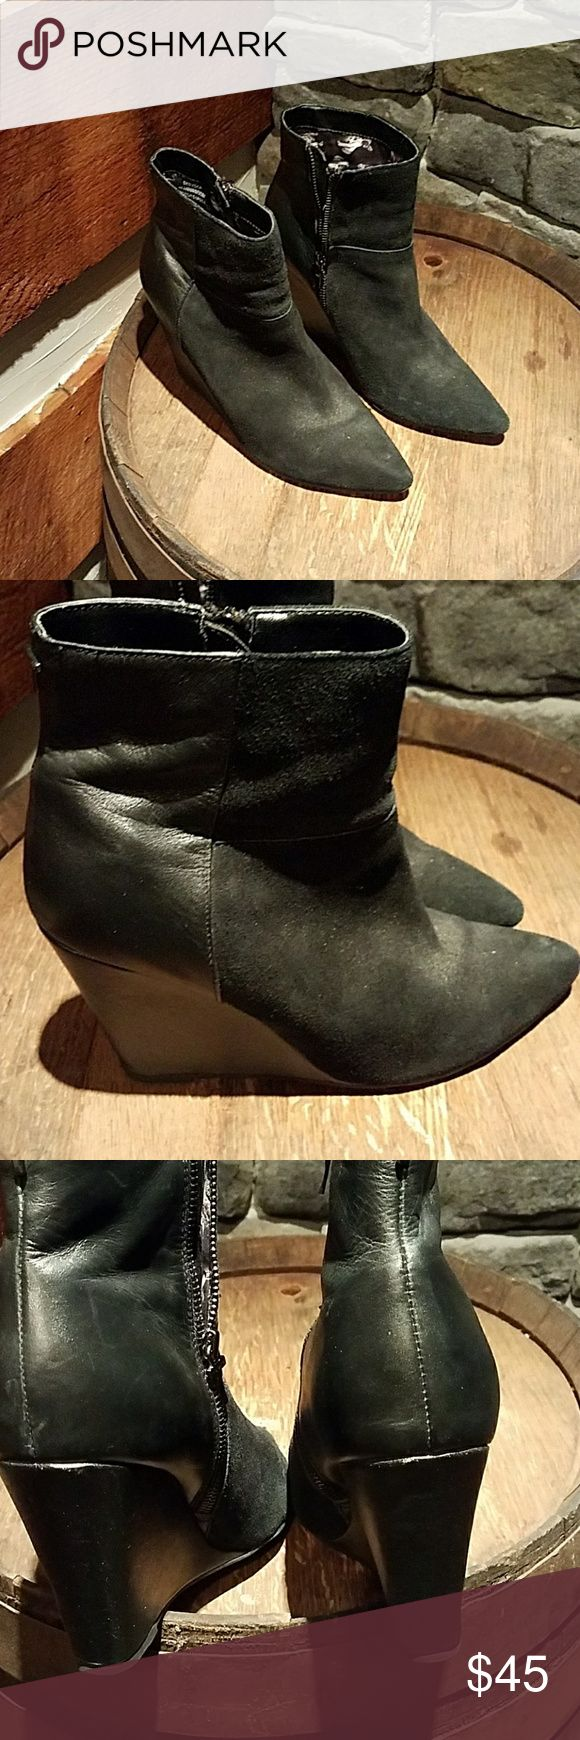 "Ted Baker leather suede ankle boots Ted Baker leather and suede ankle boots. Gently used. Heel height is 4"". Ted Baker Shoes Ankle Boots & Booties"